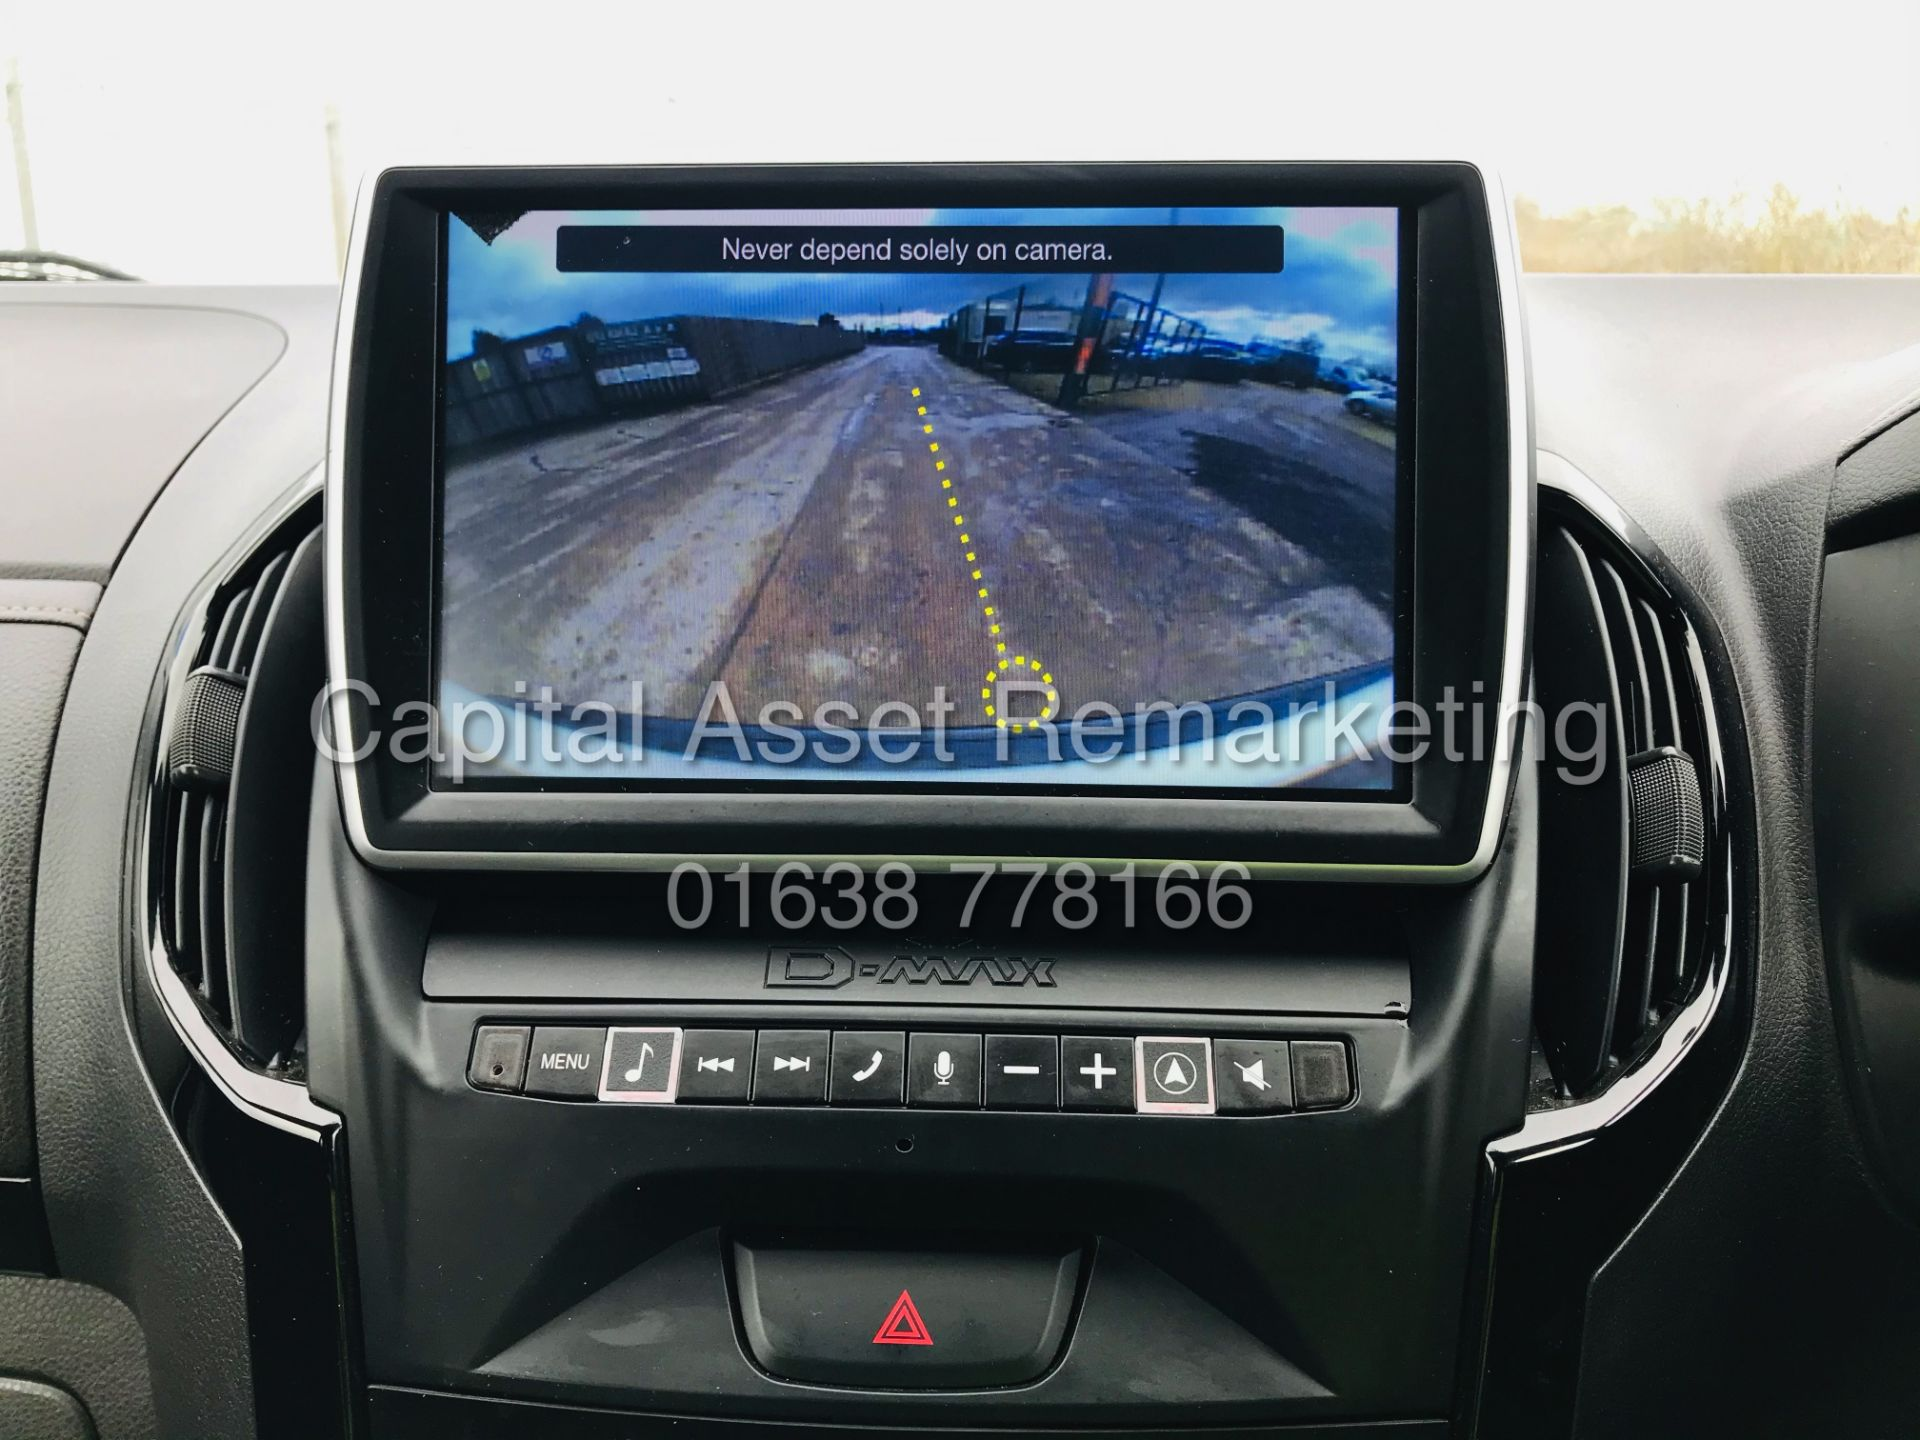 "(On Sale) ISUZU D-MAX ""BLADE"" AUTO - 1 OWNER (2019 - EURO 6) LEATHER - SAT NAV *TOP SPEC* - Image 27 of 34"